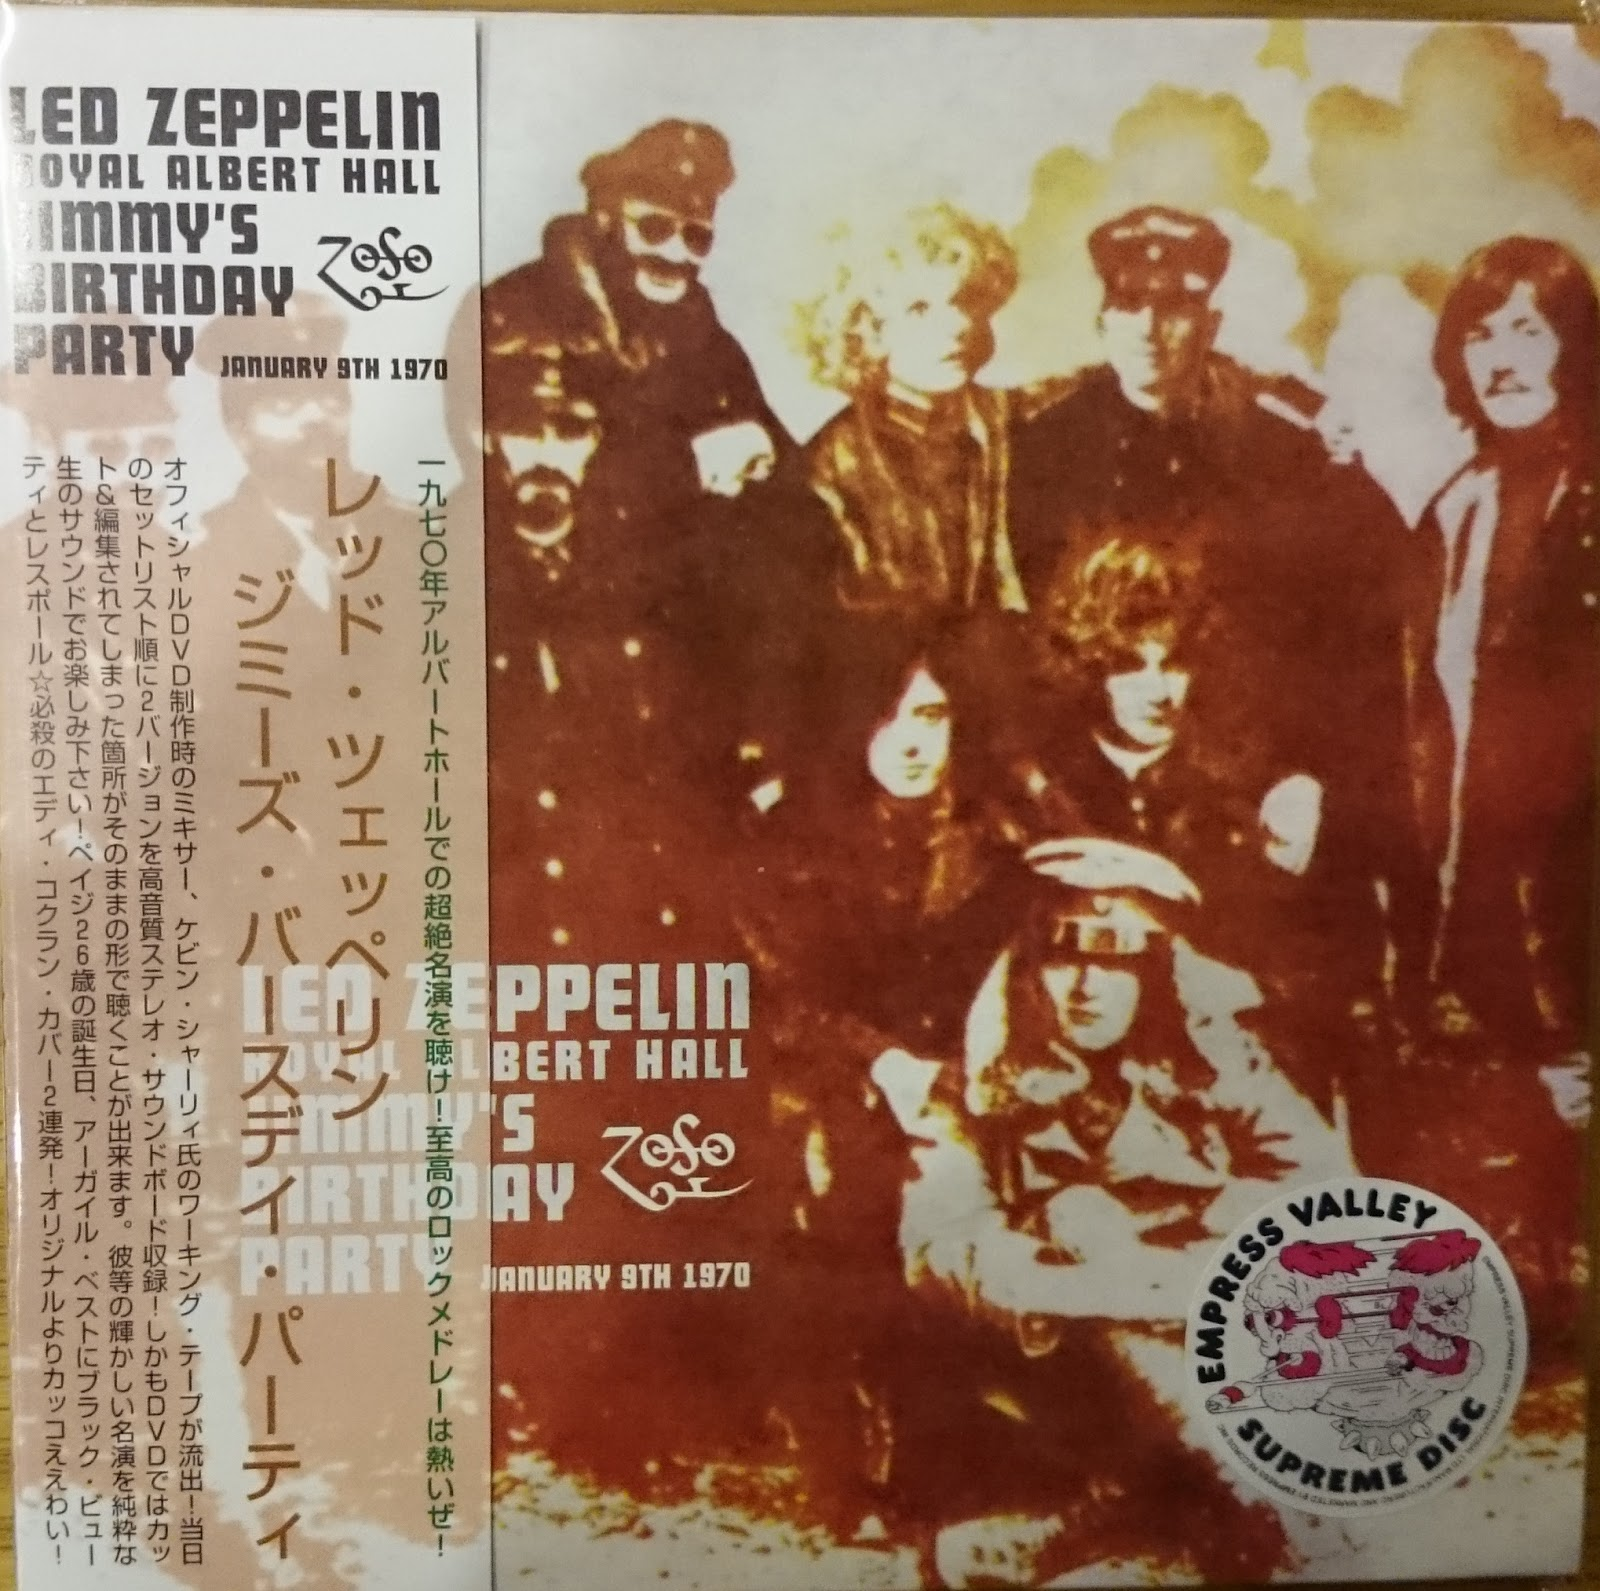 RELIQUARY: Led Zeppelin [1970 01 09] Jimmy's Birthday Party